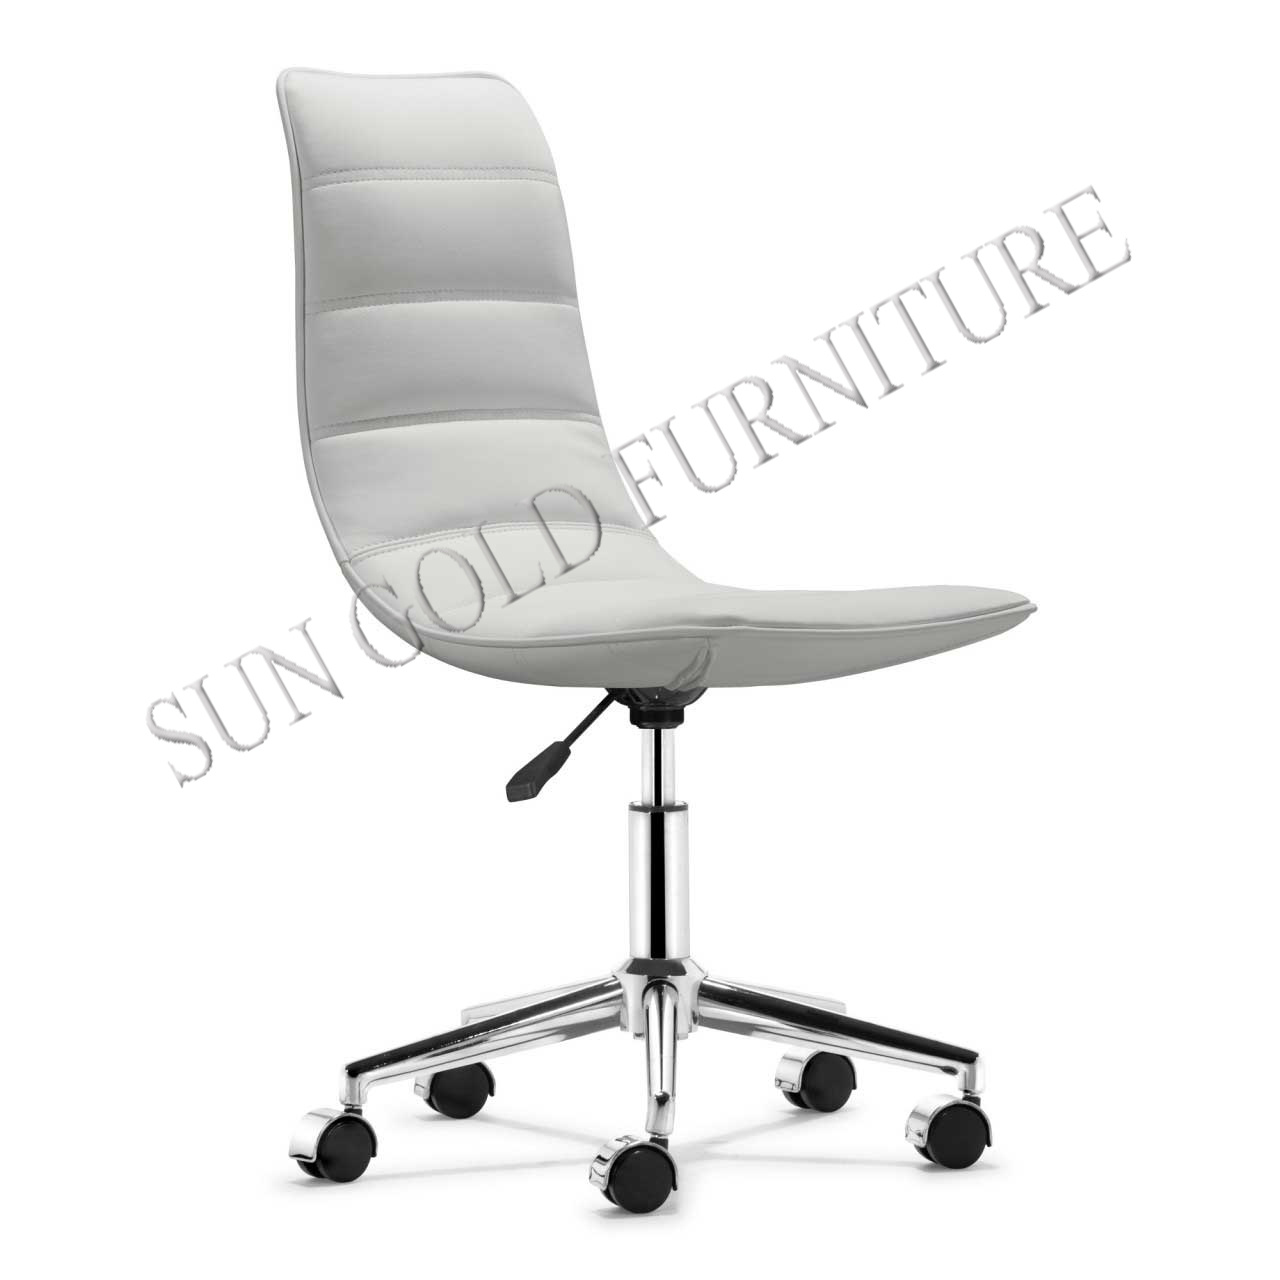 Hot Item Sz Ocy126 Armless White Stylish Office Chair Arc Shaped